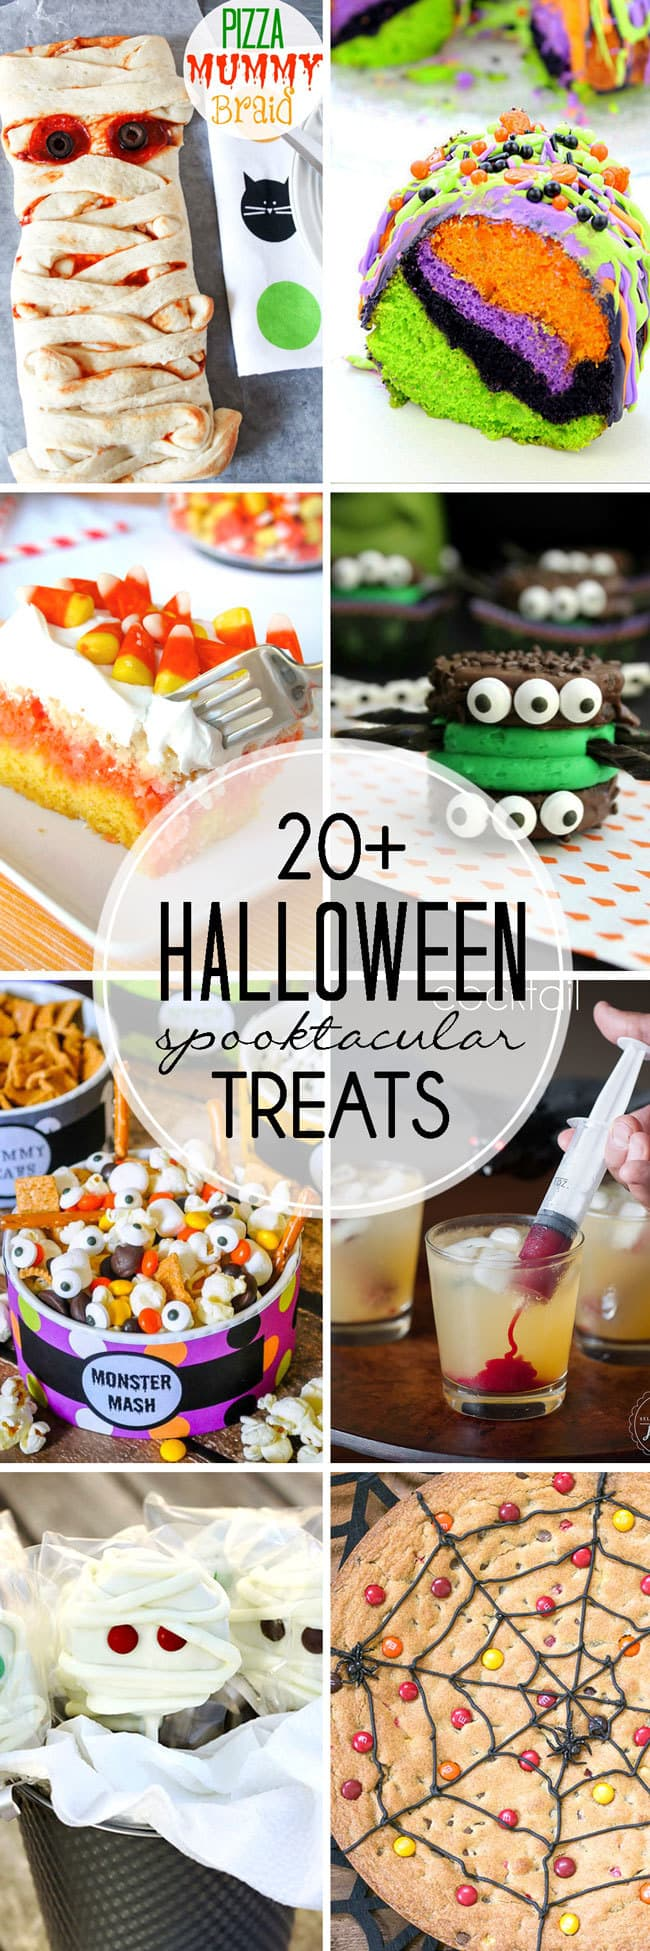 Need Halloween Recipes? Check out these 20+ Halloween Treats! Get ready for Halloween by making some yummy, fun treats from this roundup! via @jennikolaus